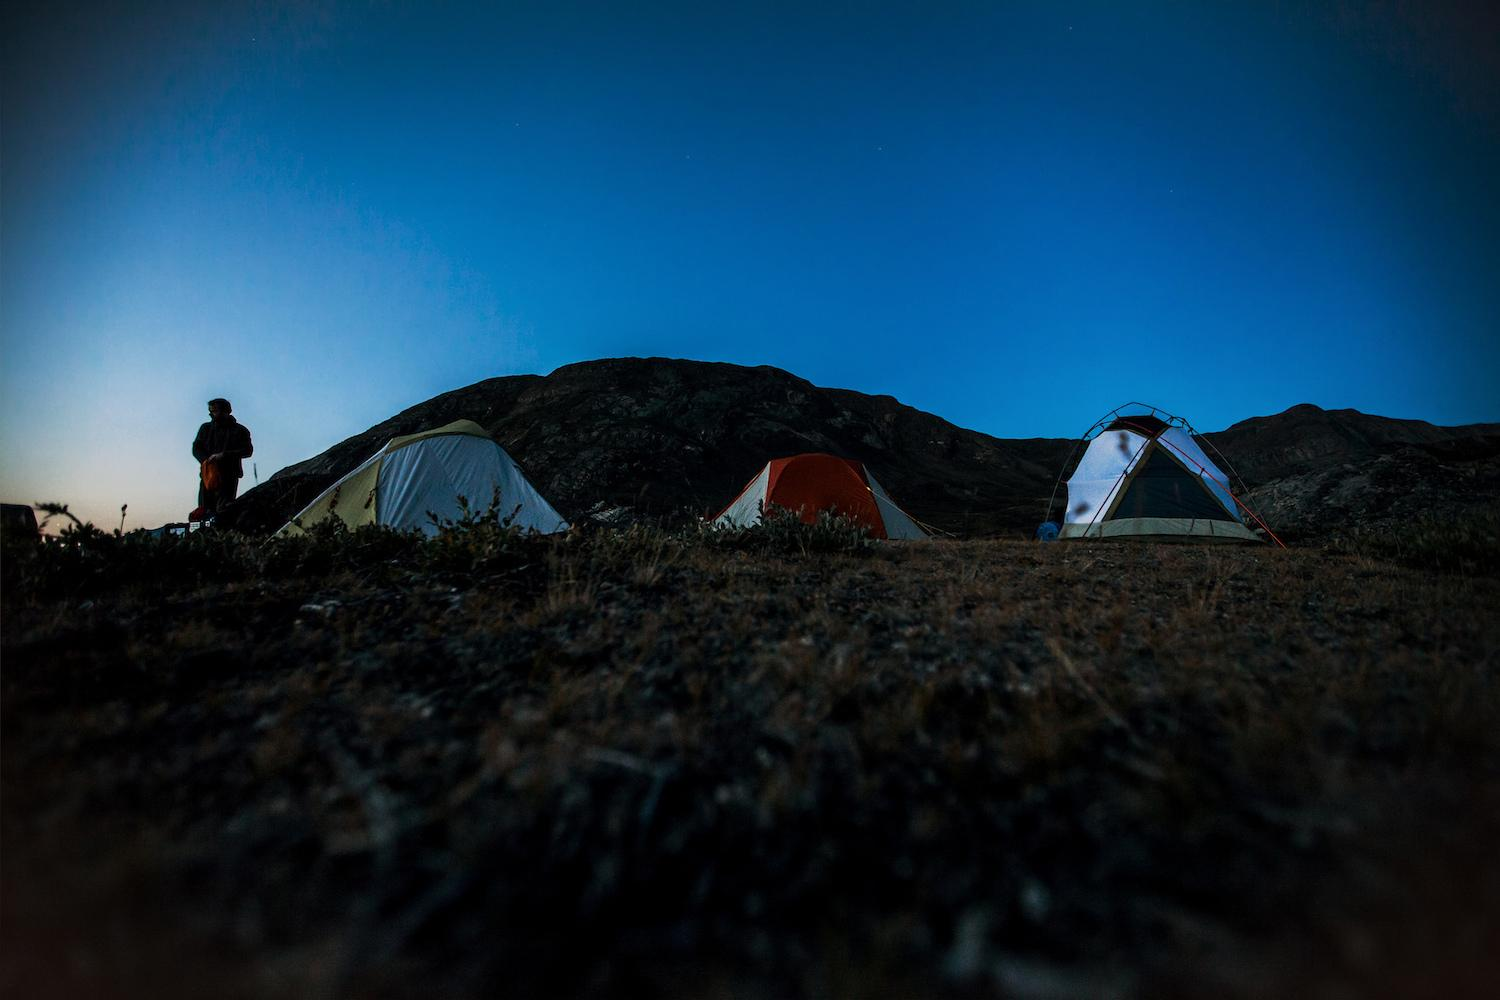 Tourists camping in a tent at Polar Lodge in Kangerlussuaq, Greenland. Photo by Mads Pihl